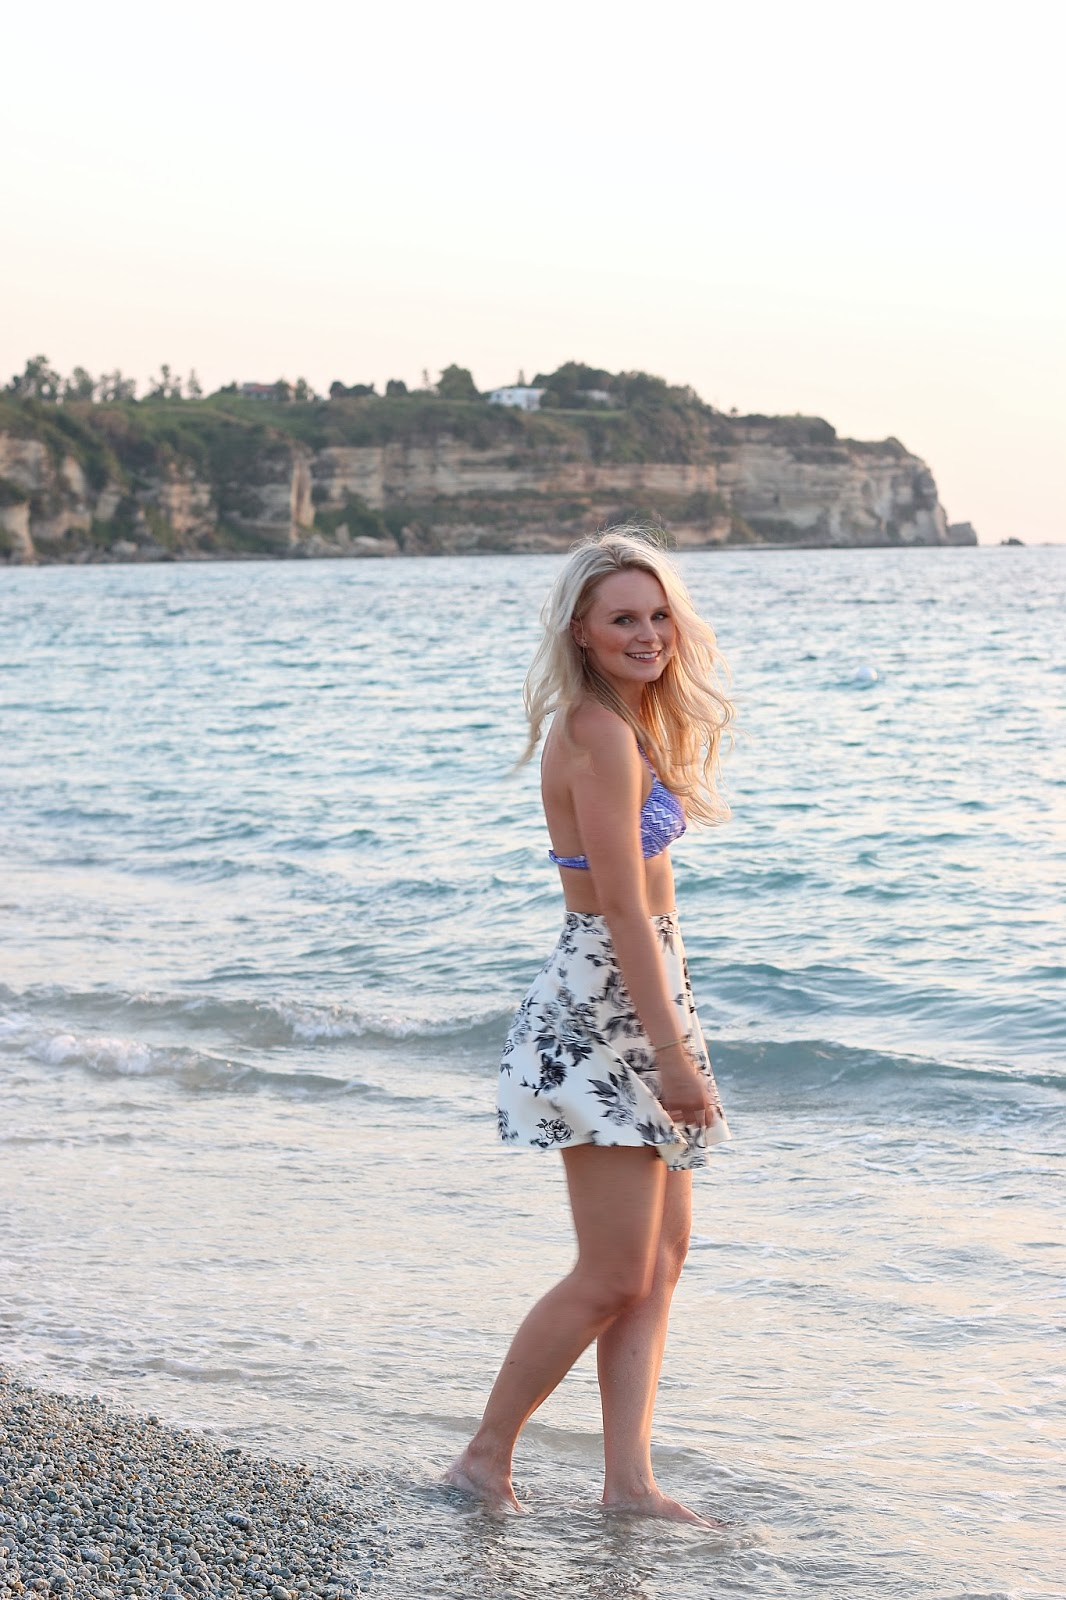 a blonde girl poses in front of beautiful sunset in italy on the beach